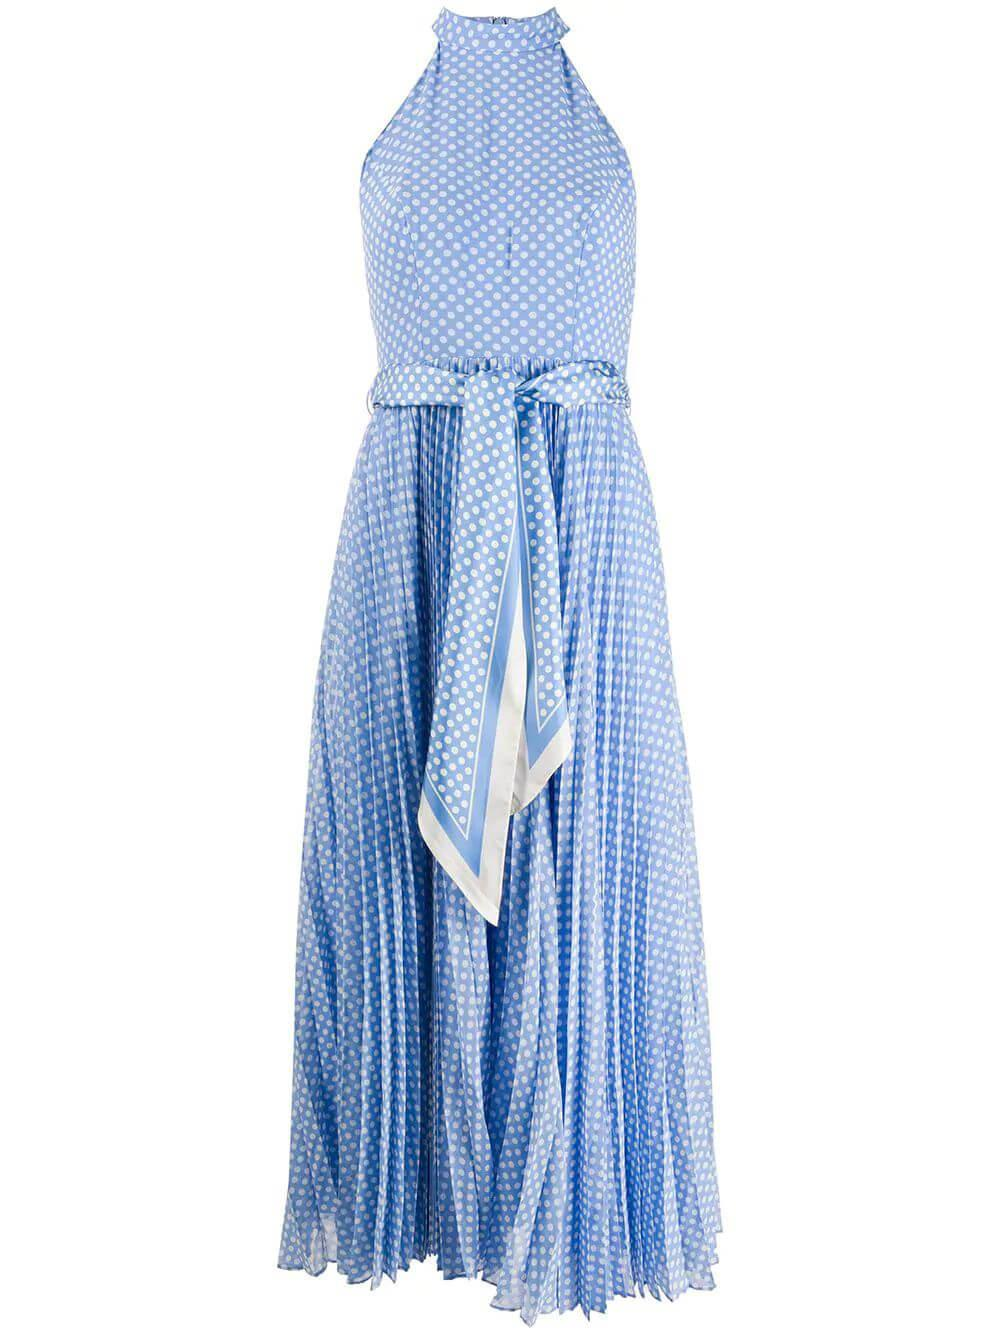 Super Eight Picnic Dress